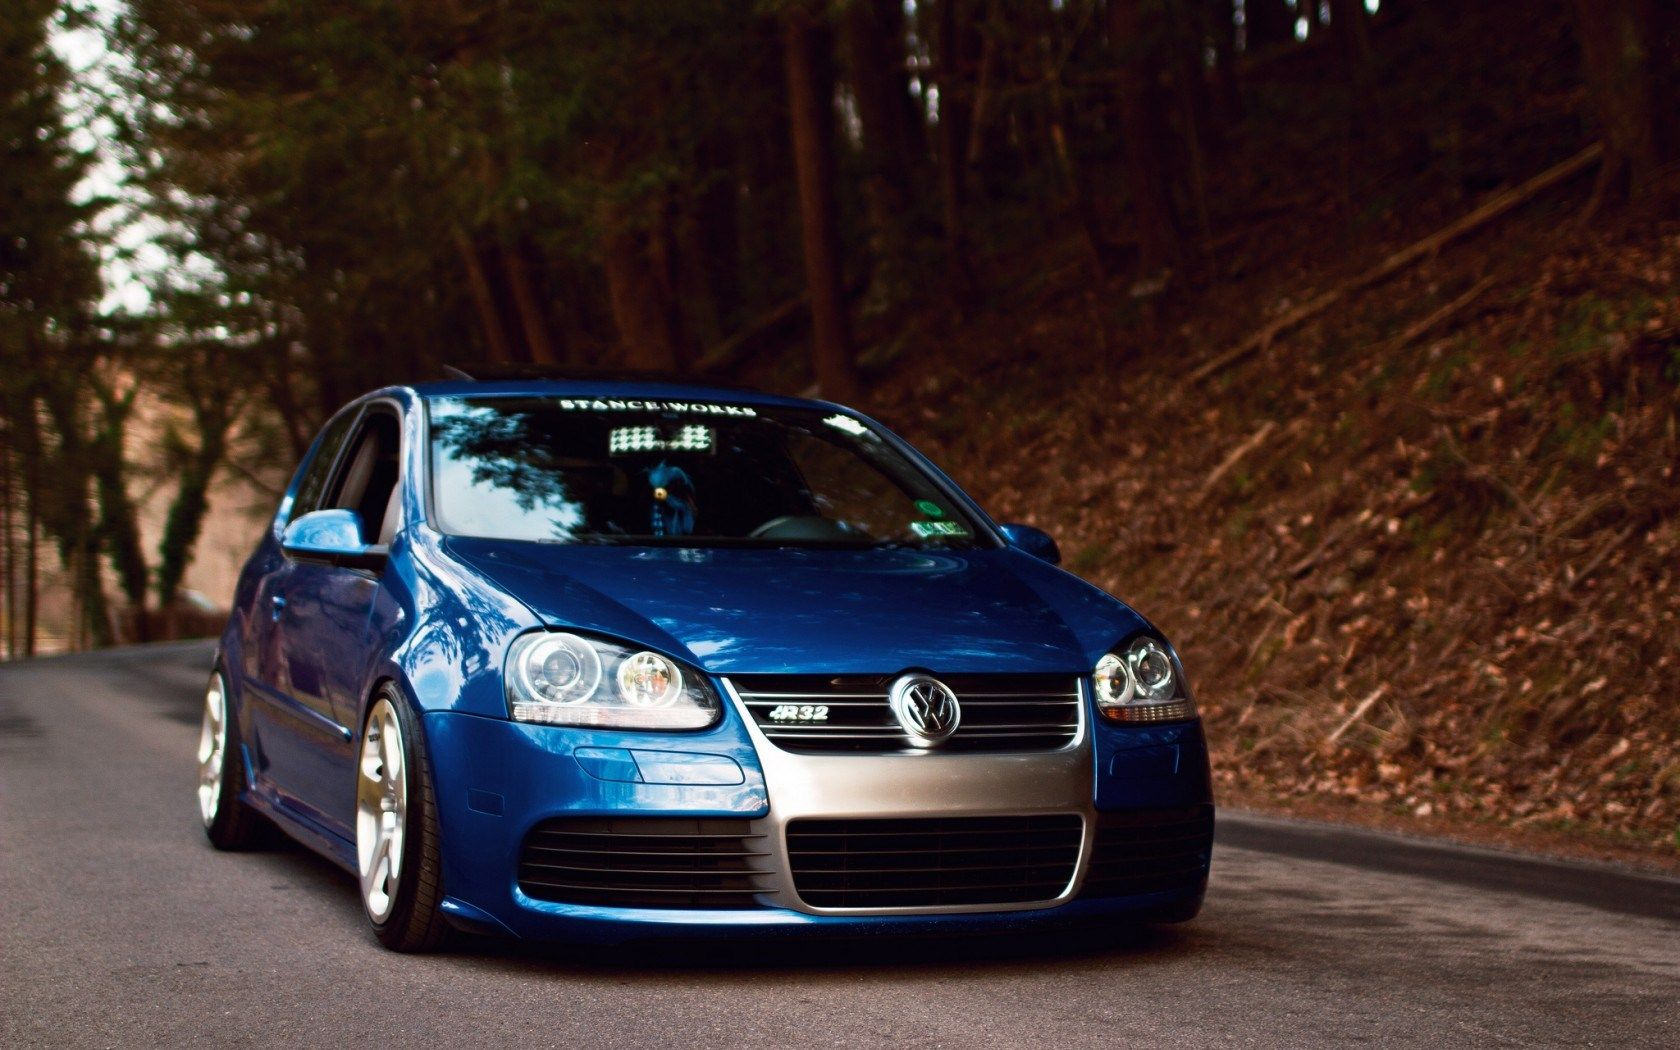 volkswagen golf v r32 car forest road fall hd wallpaper. Black Bedroom Furniture Sets. Home Design Ideas